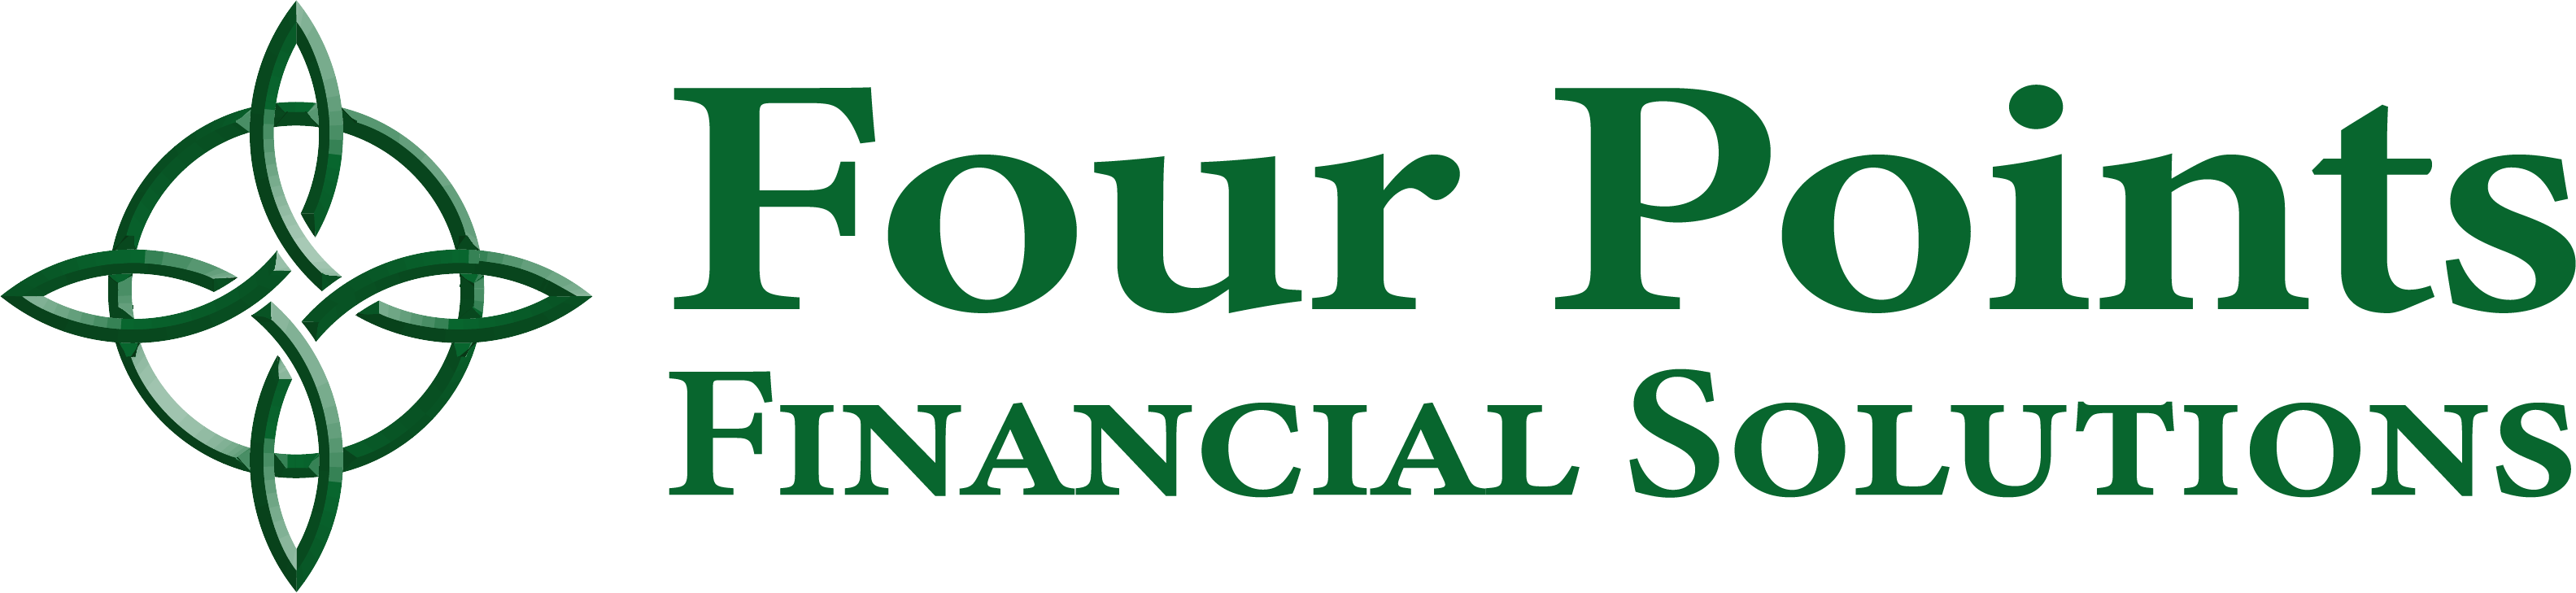 Logo for Four Points Financial Solutions